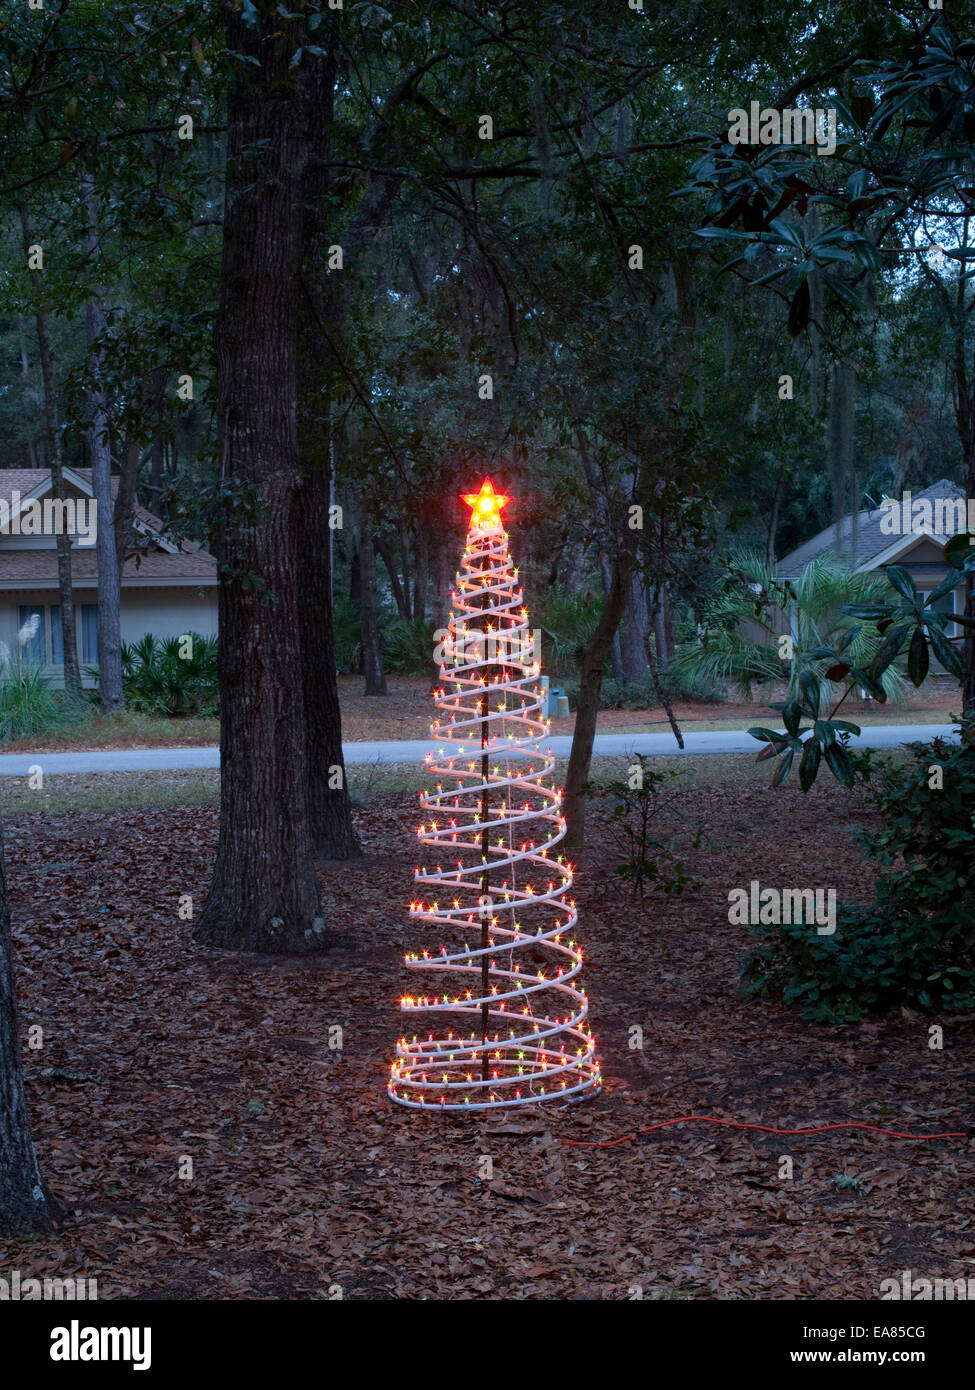 artificial Christmas tree at dusk on suburban yard - Stock Image